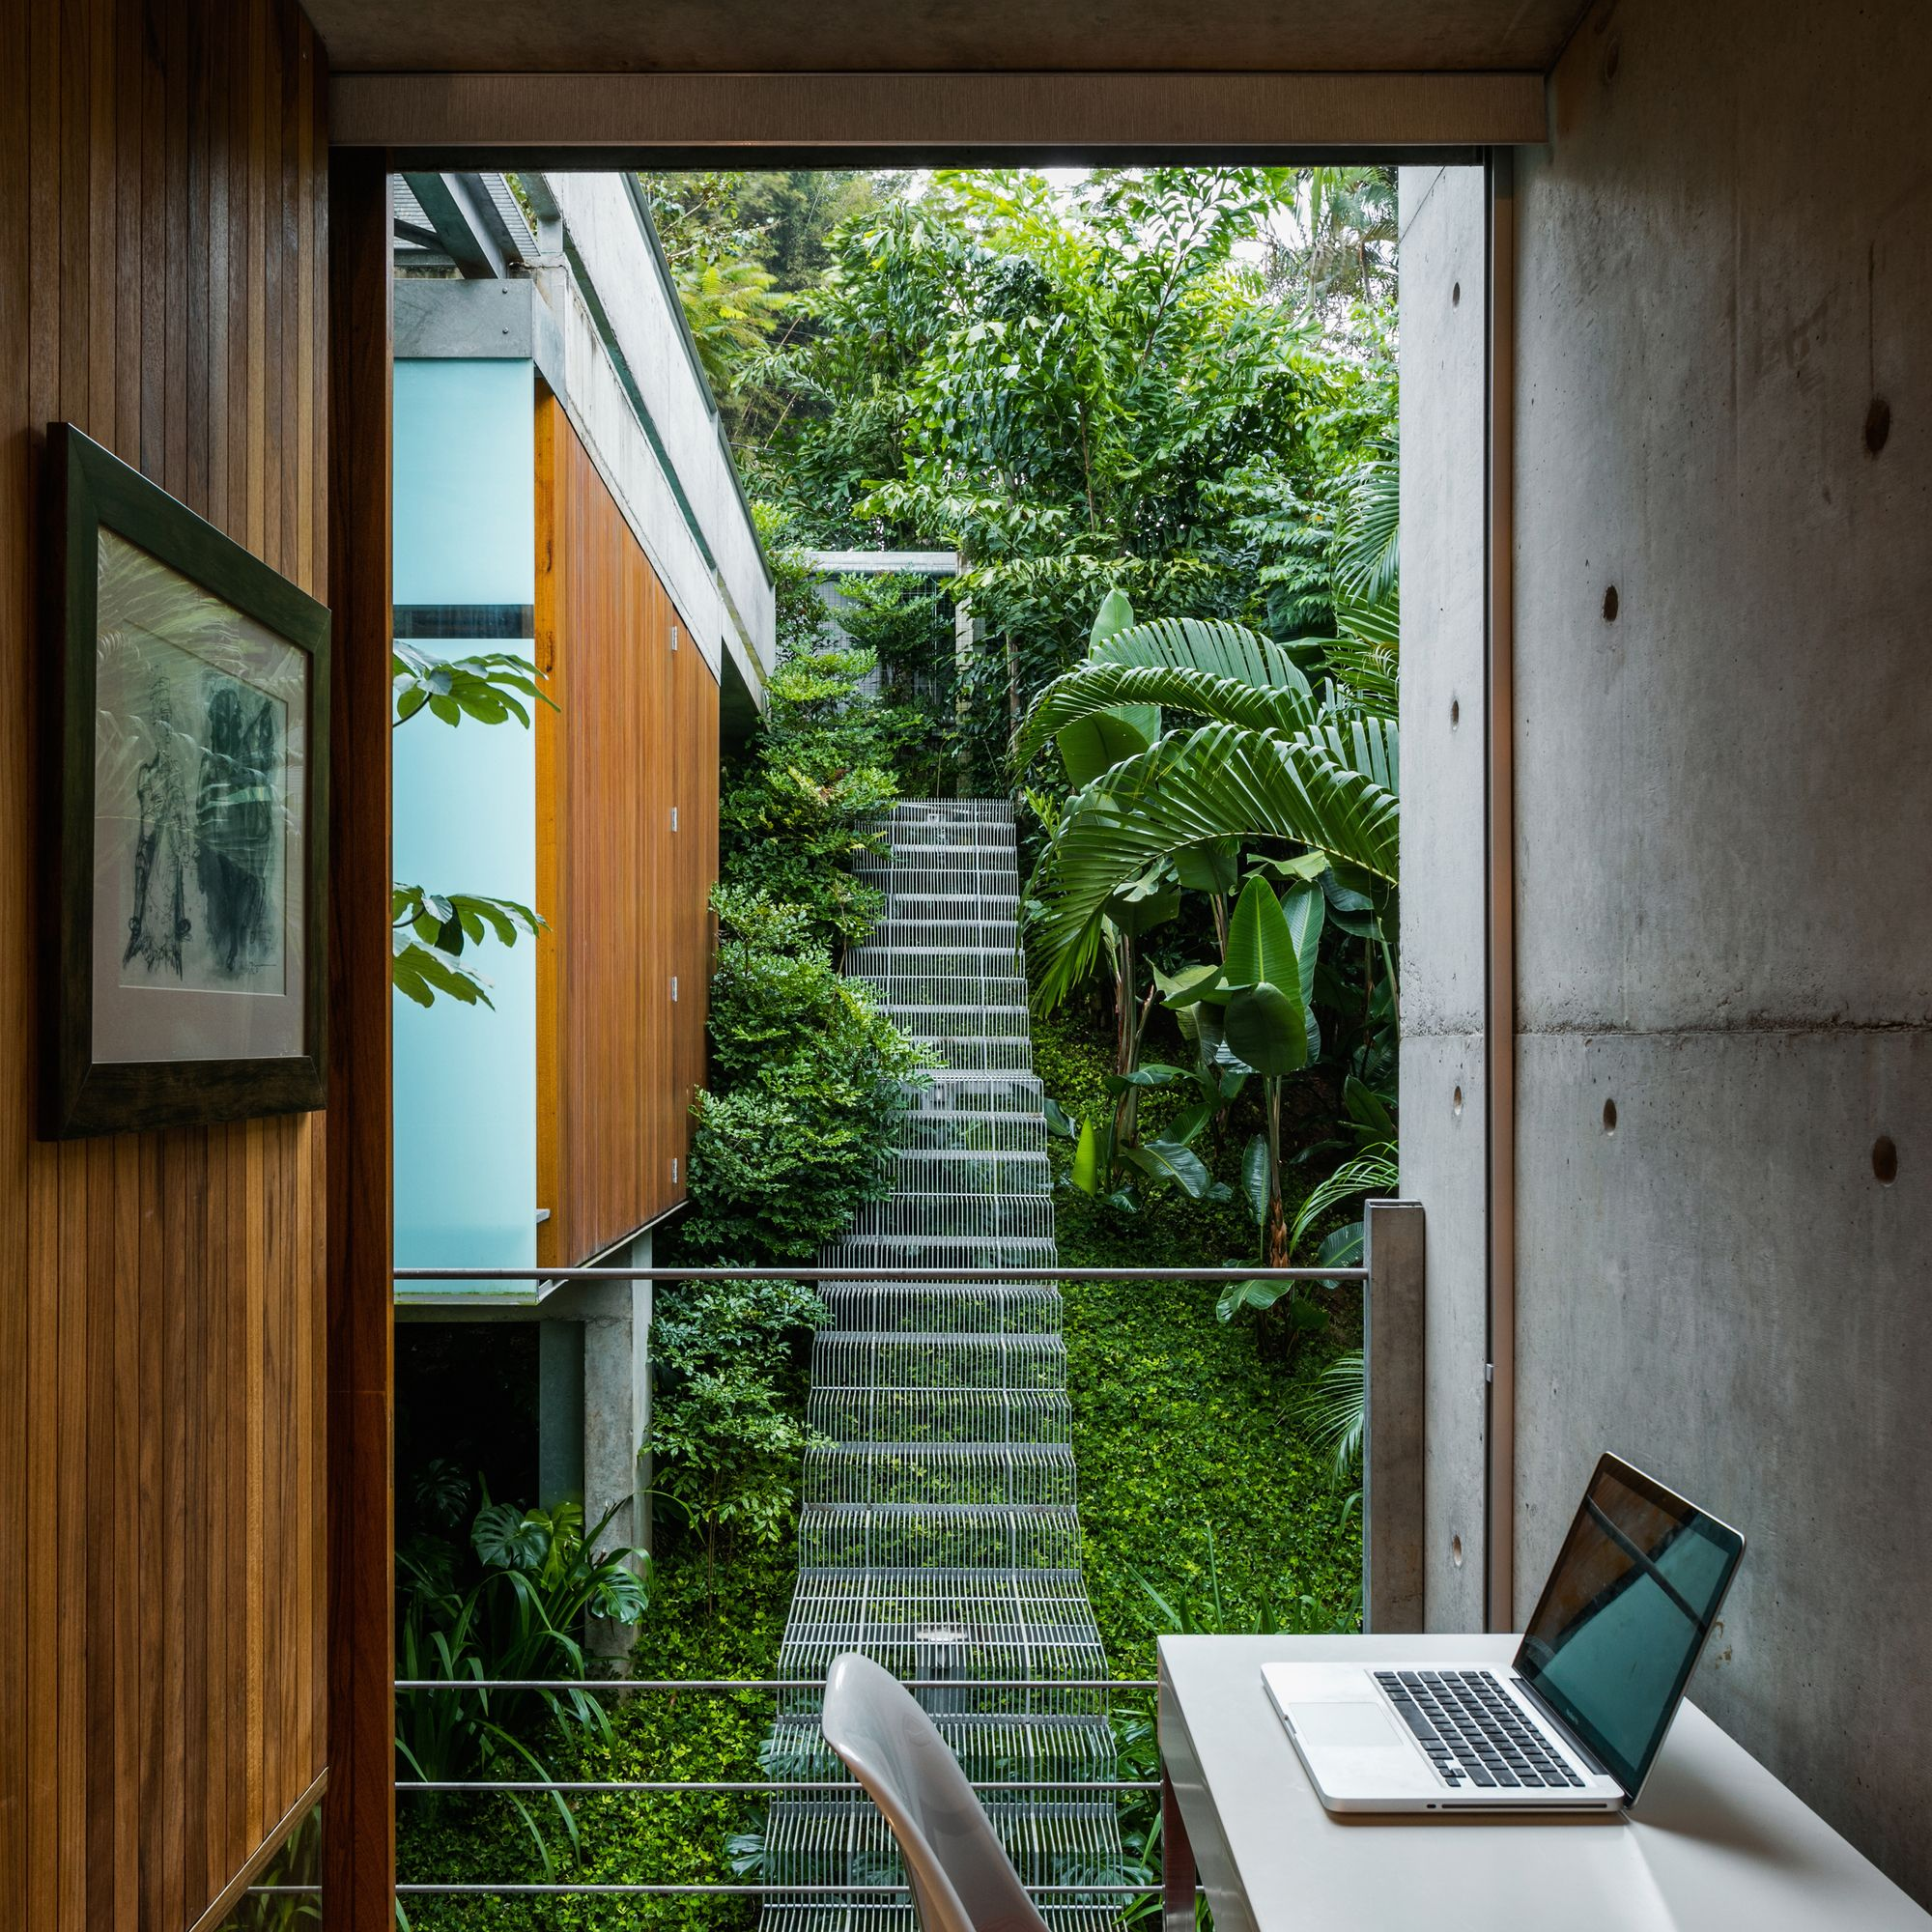 Image 5 of 39 from gallery of Ubatuba House II / SPBR Arquitetos. Photograph by Nelson Kon